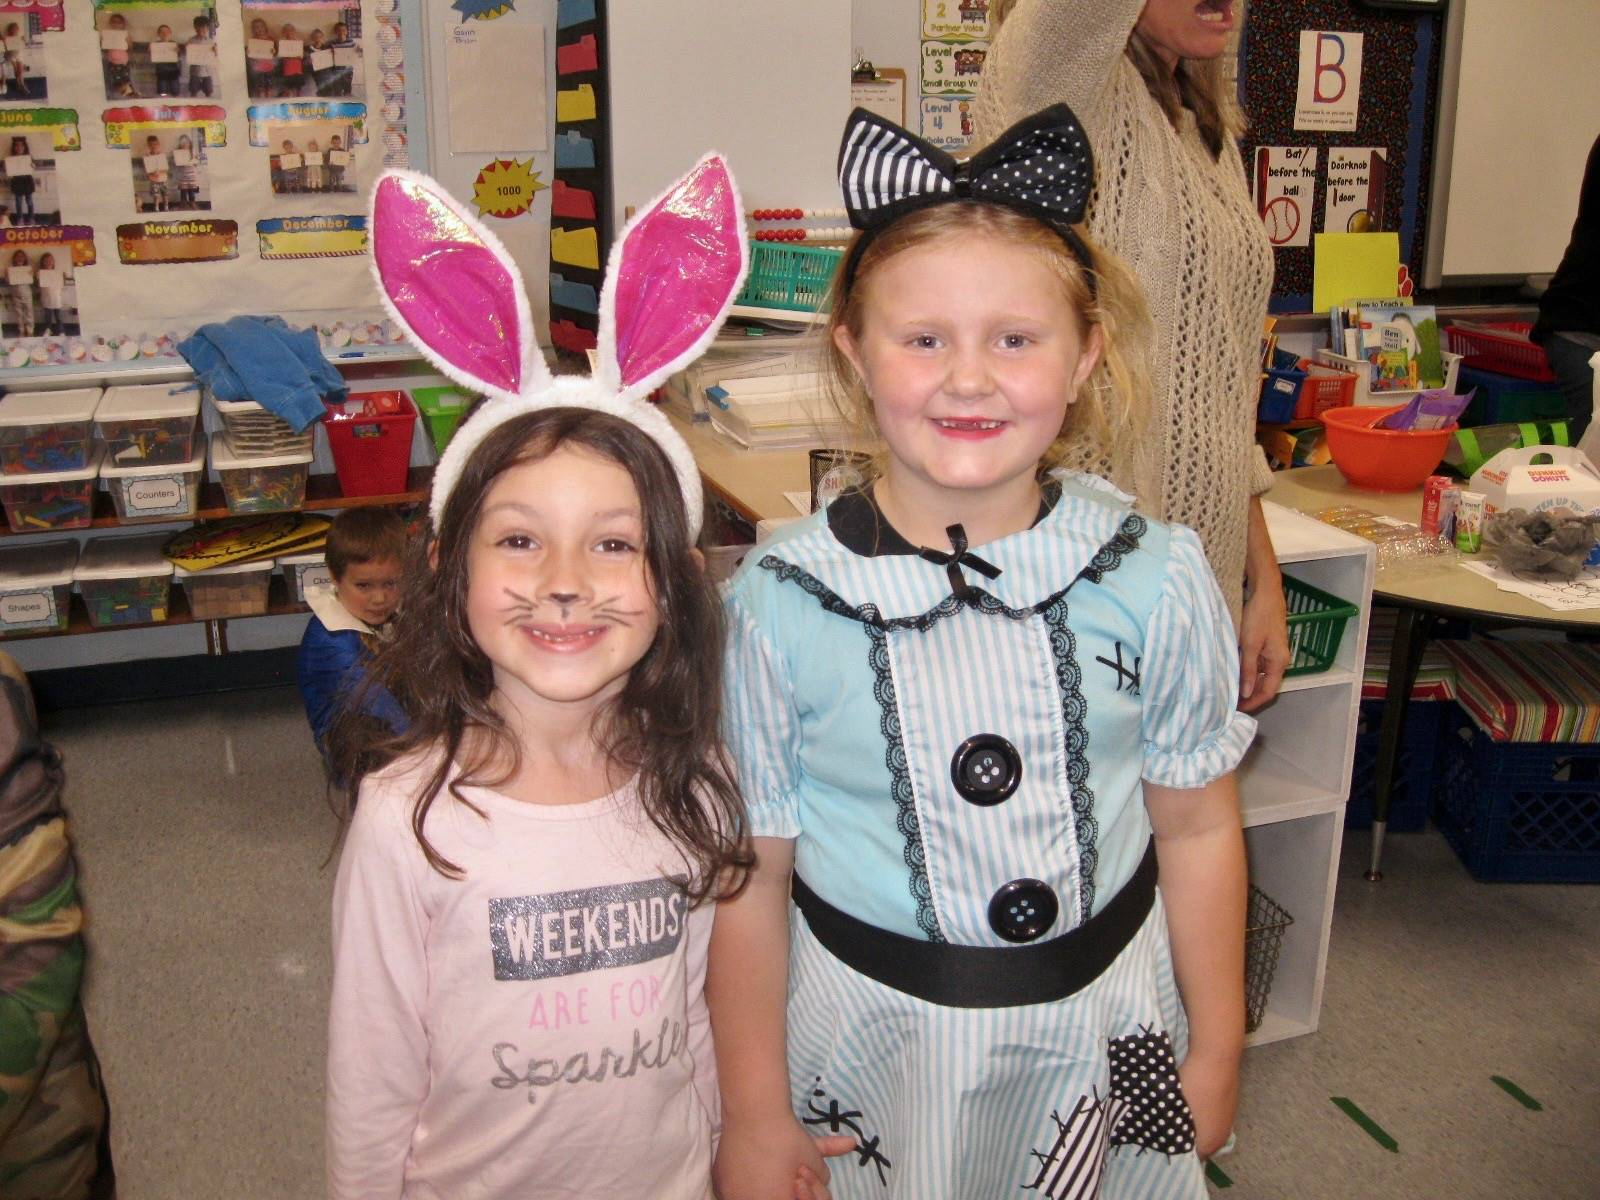 2 students dressed up.